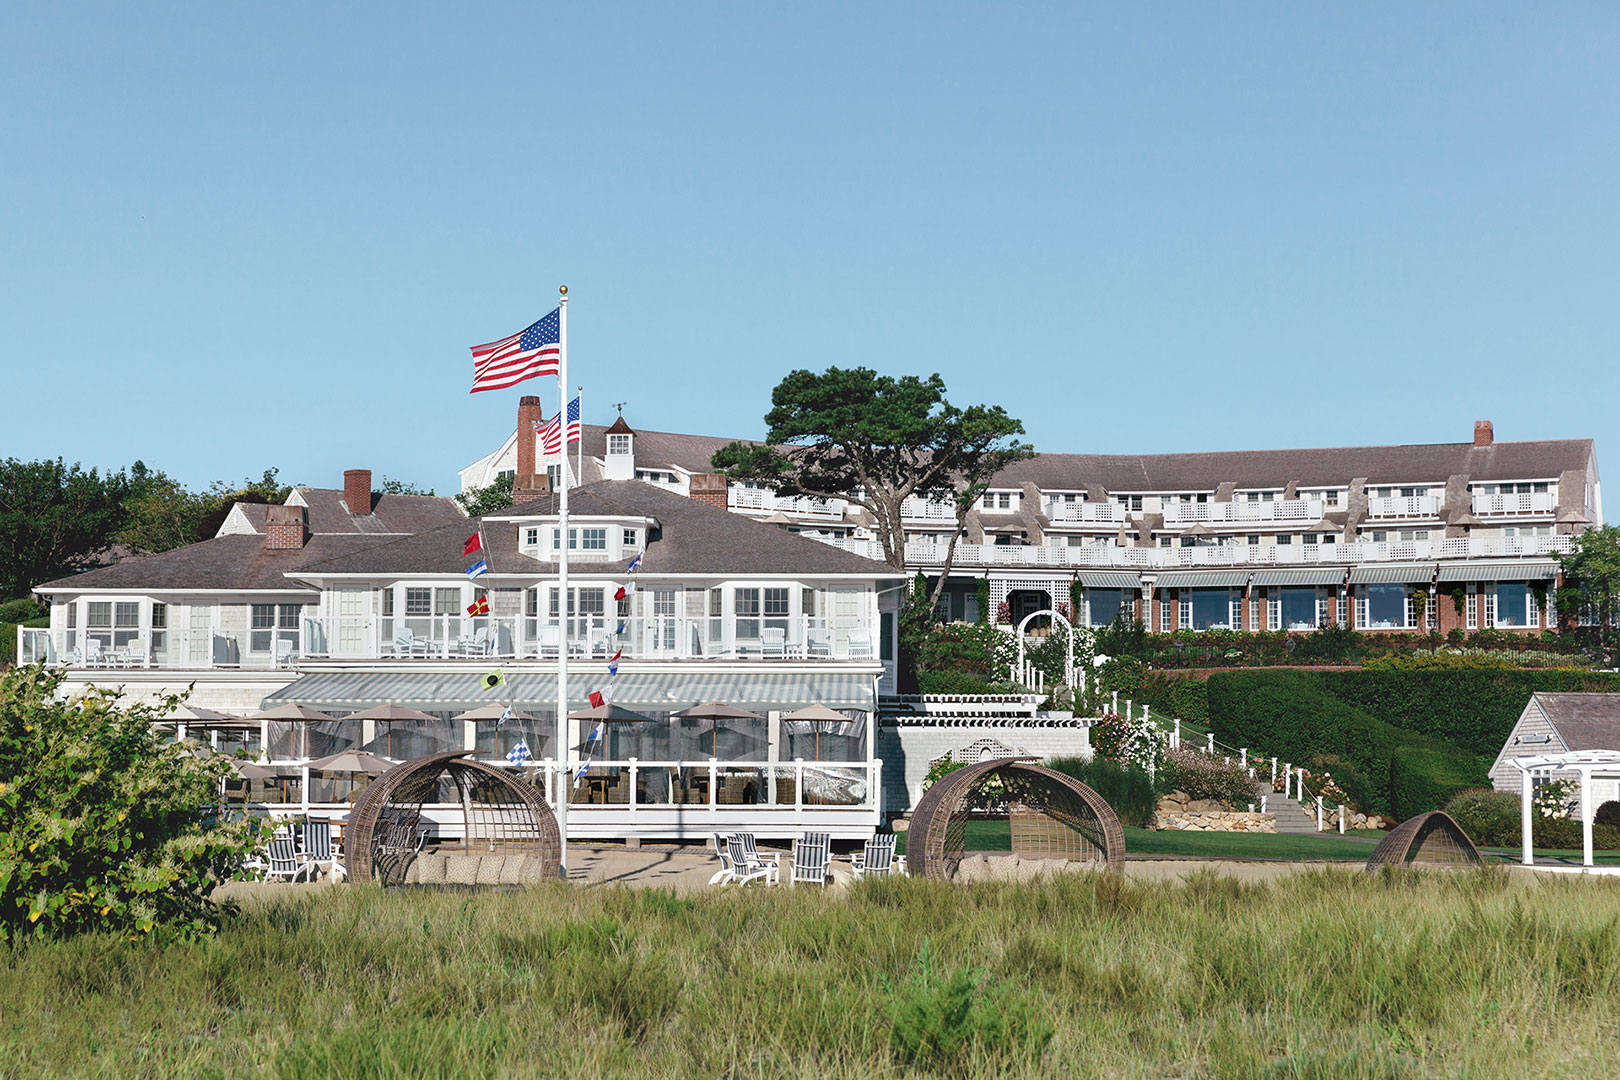 Chatham Living By the Sea - Chatham Bars Inn